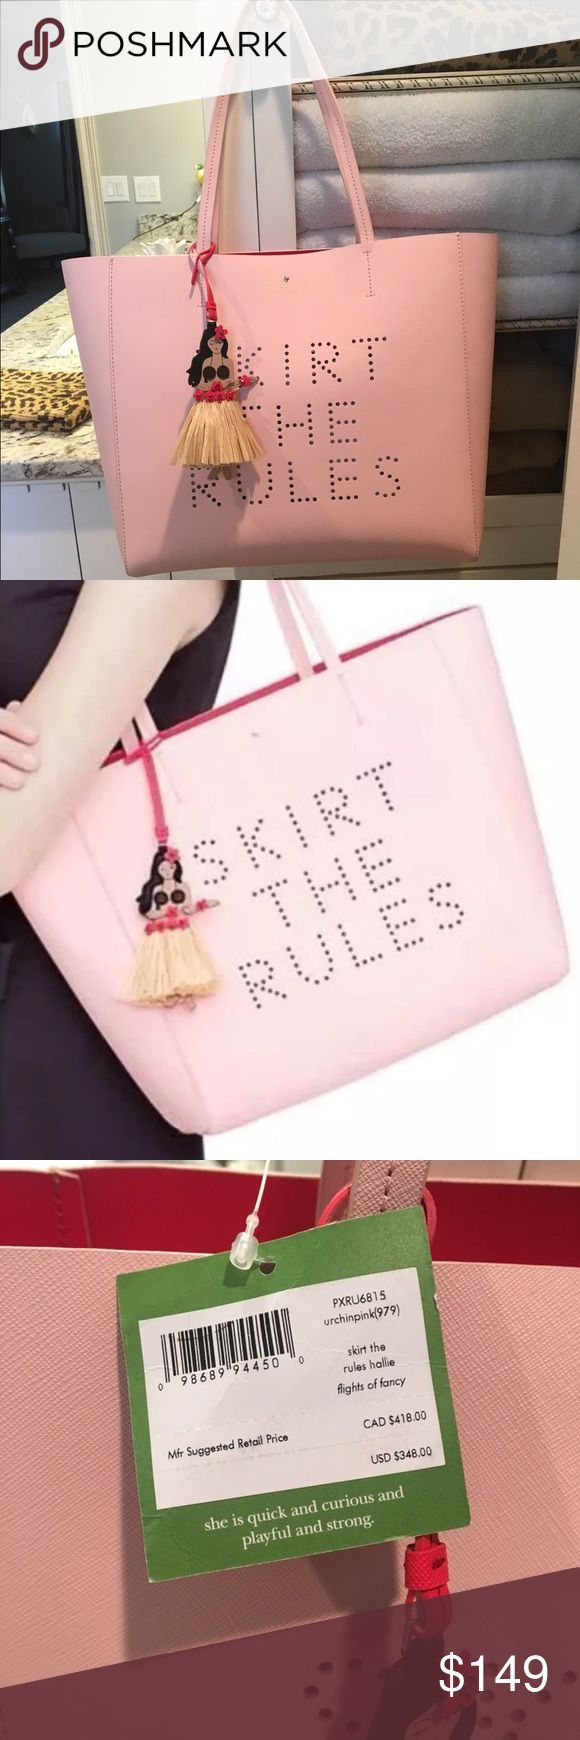 New Kate Spade skirt the rules handbag/tote New with tags pink skirt the rules Kate spade. Comes with dust bag. kate spade Bags Totes